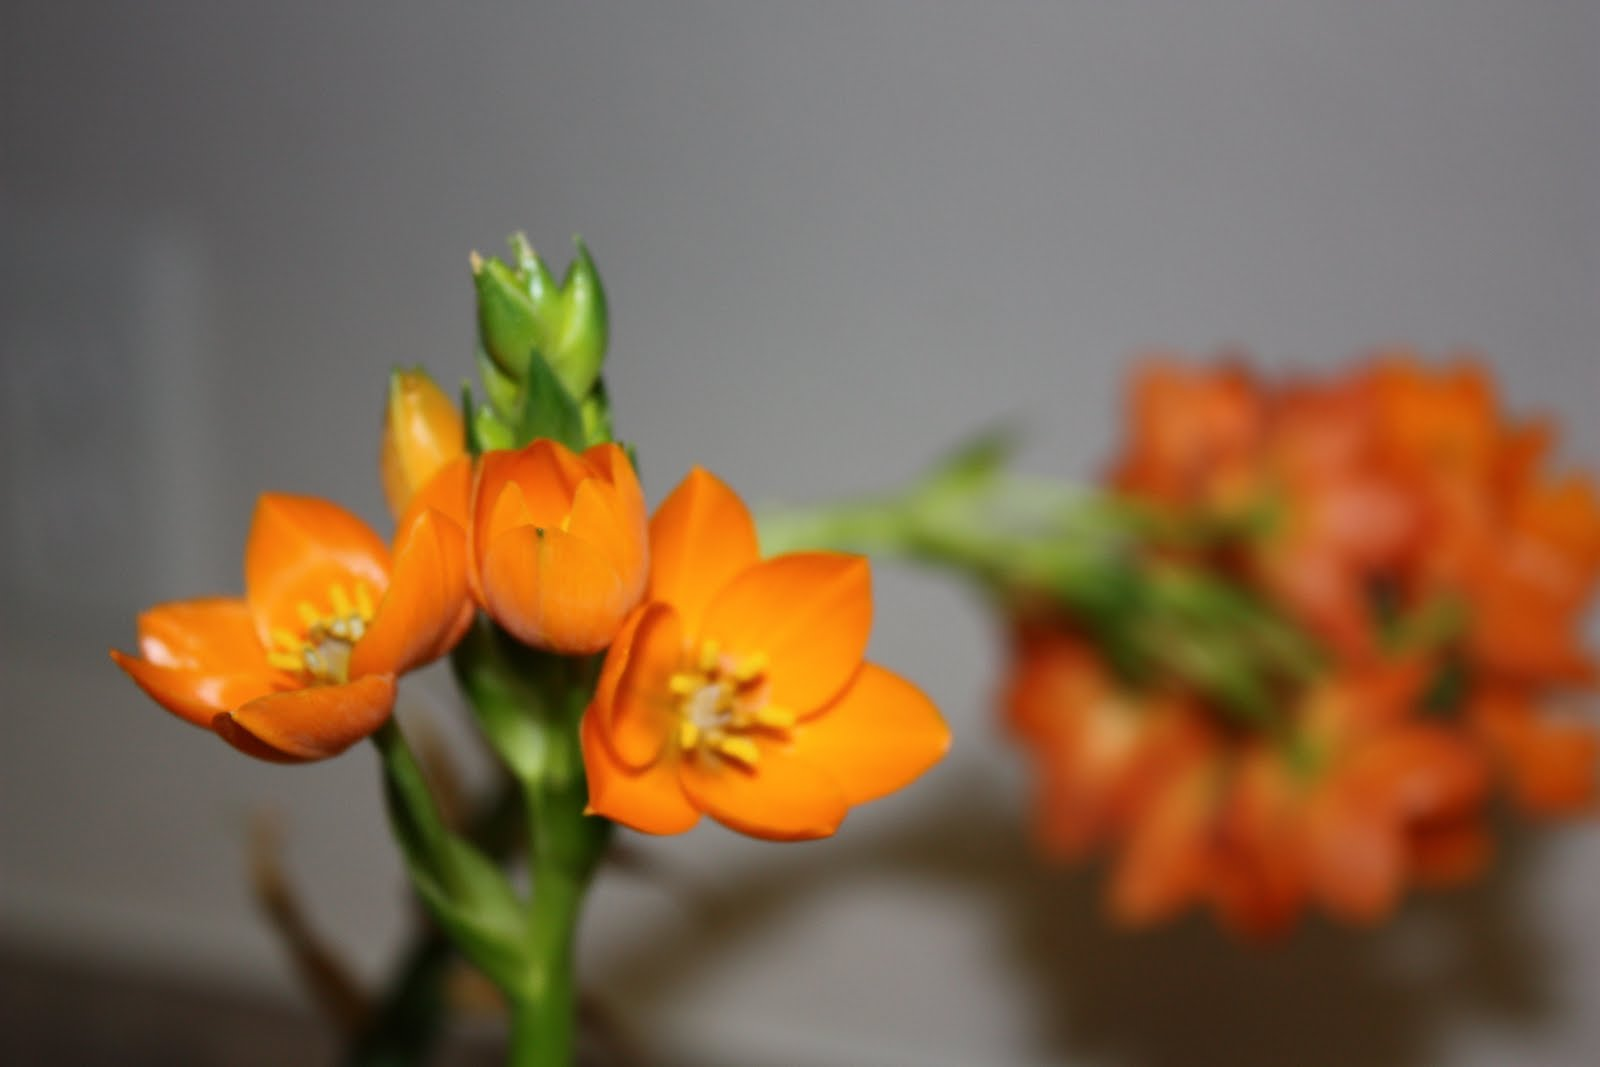 Jackie Sues Hobbies Orange Star Flower